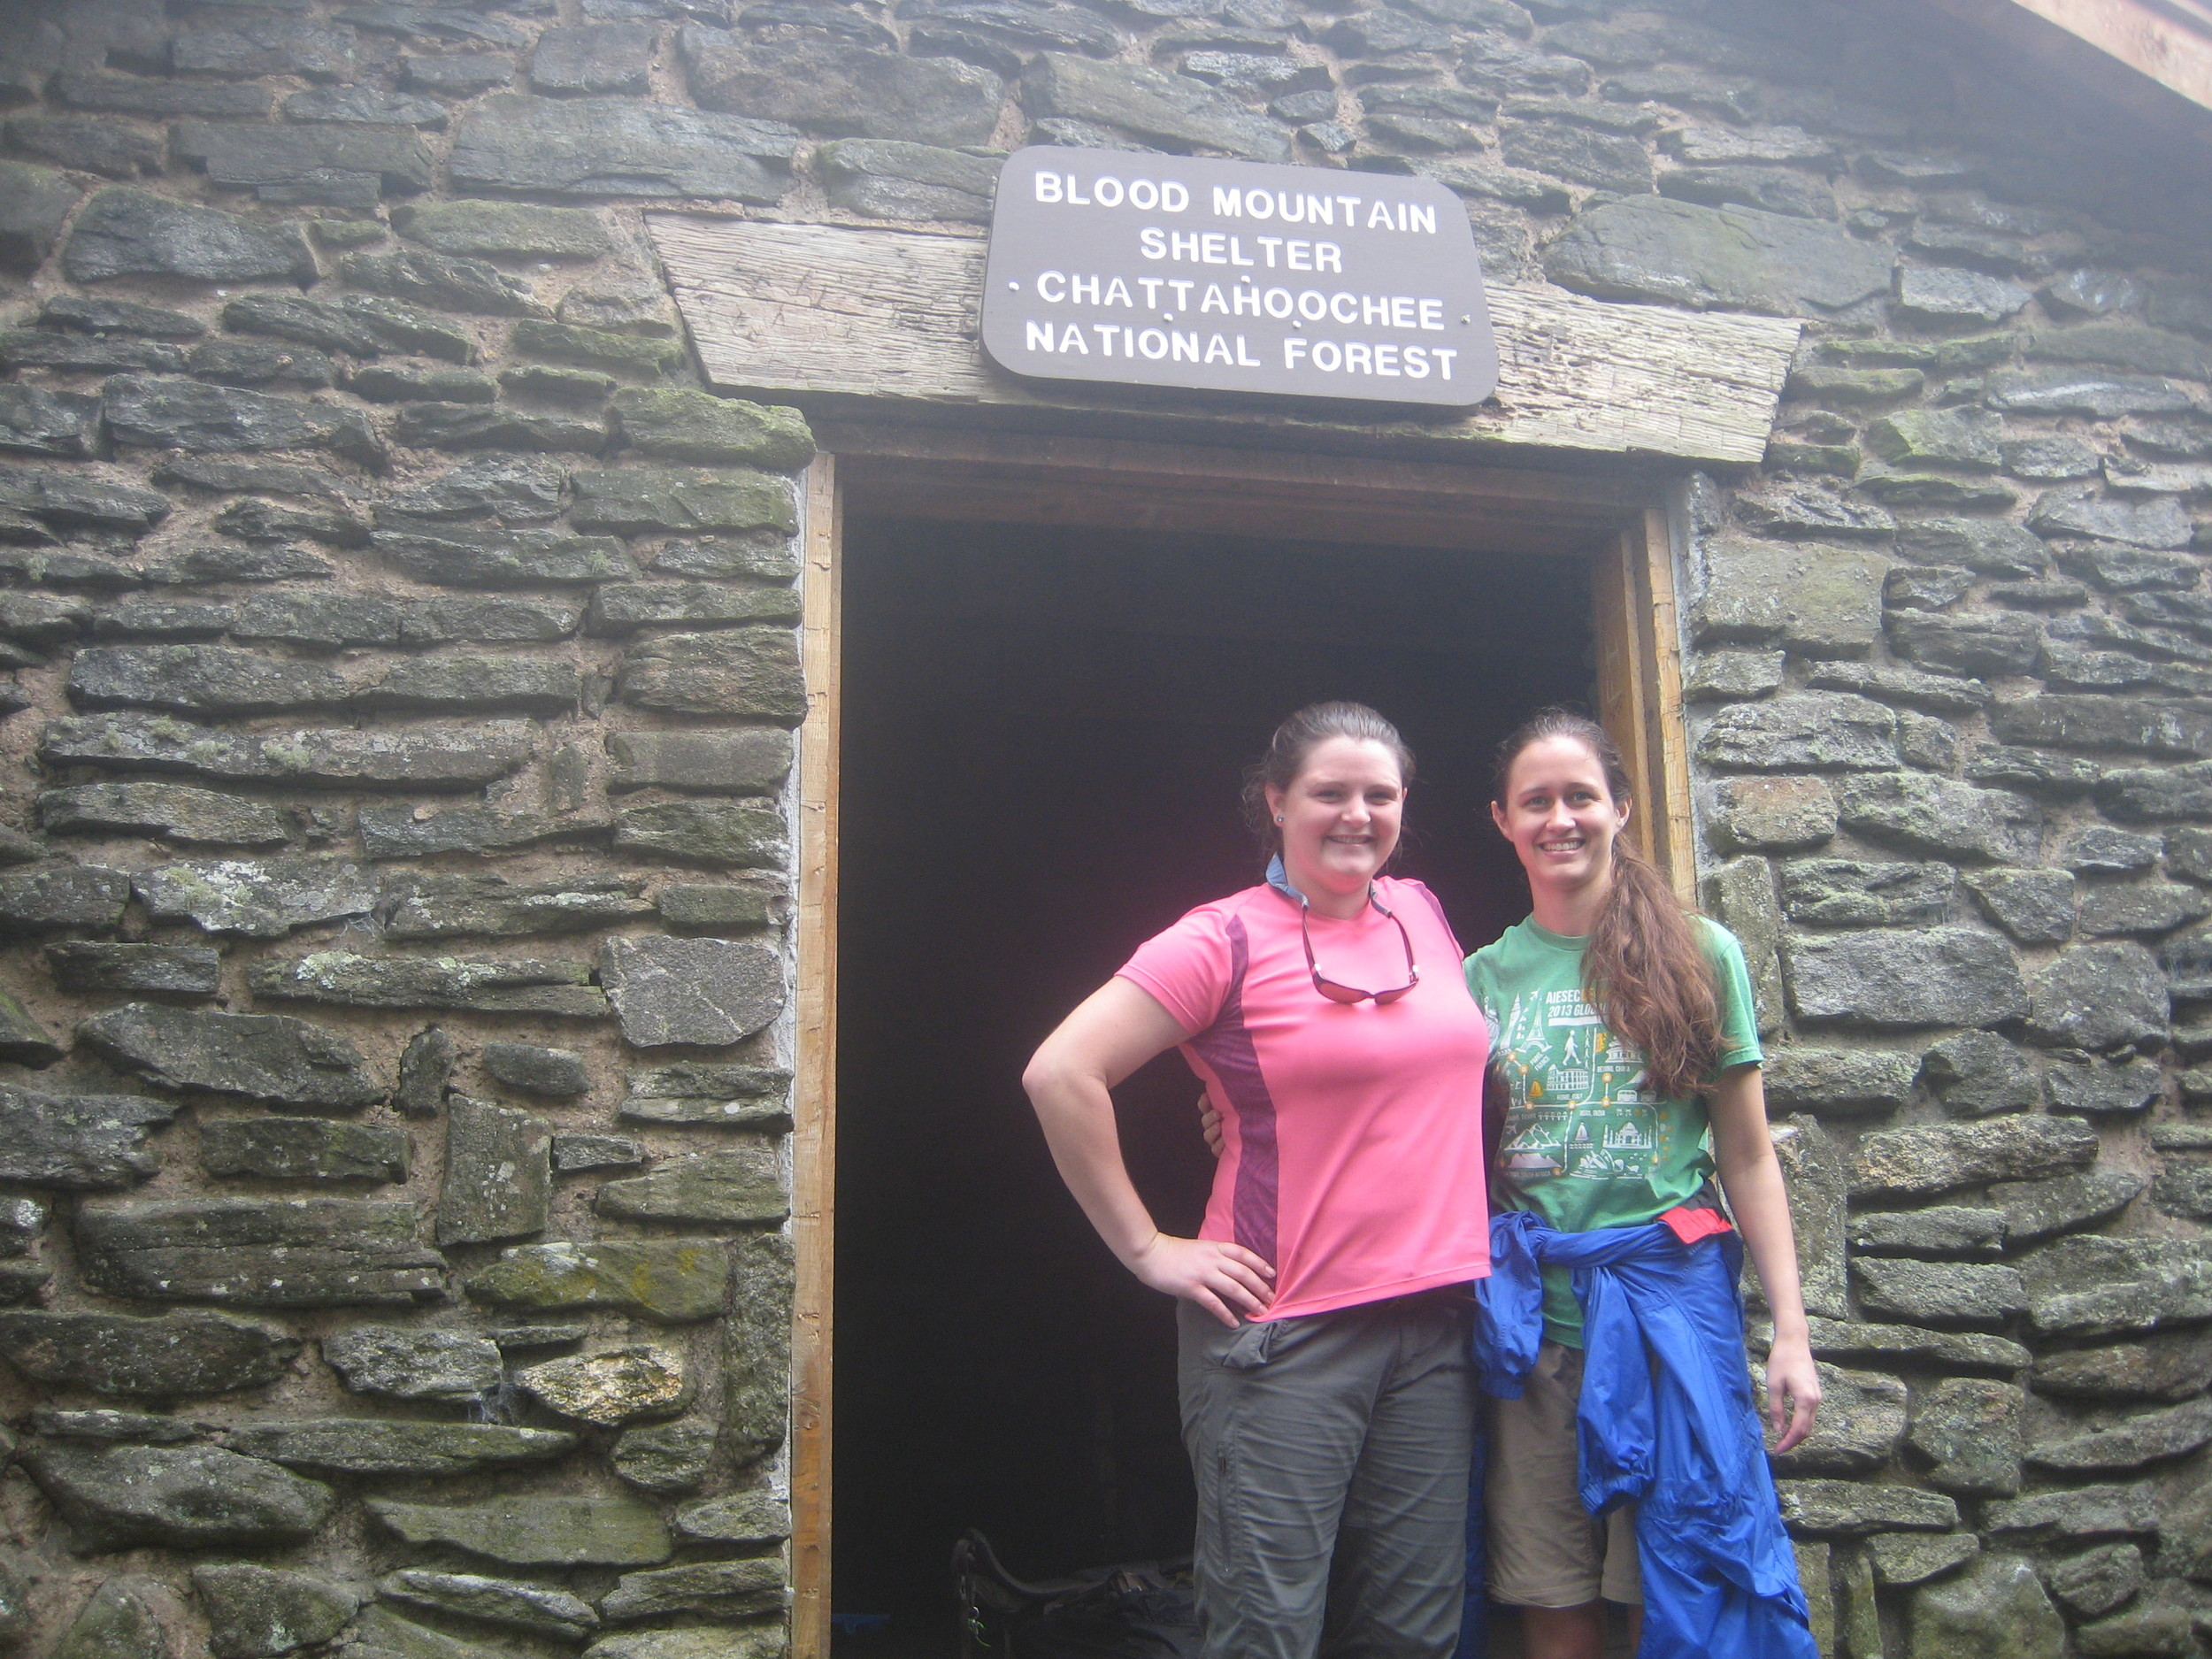 Becky and me in front of the Blood Mountain shelter.